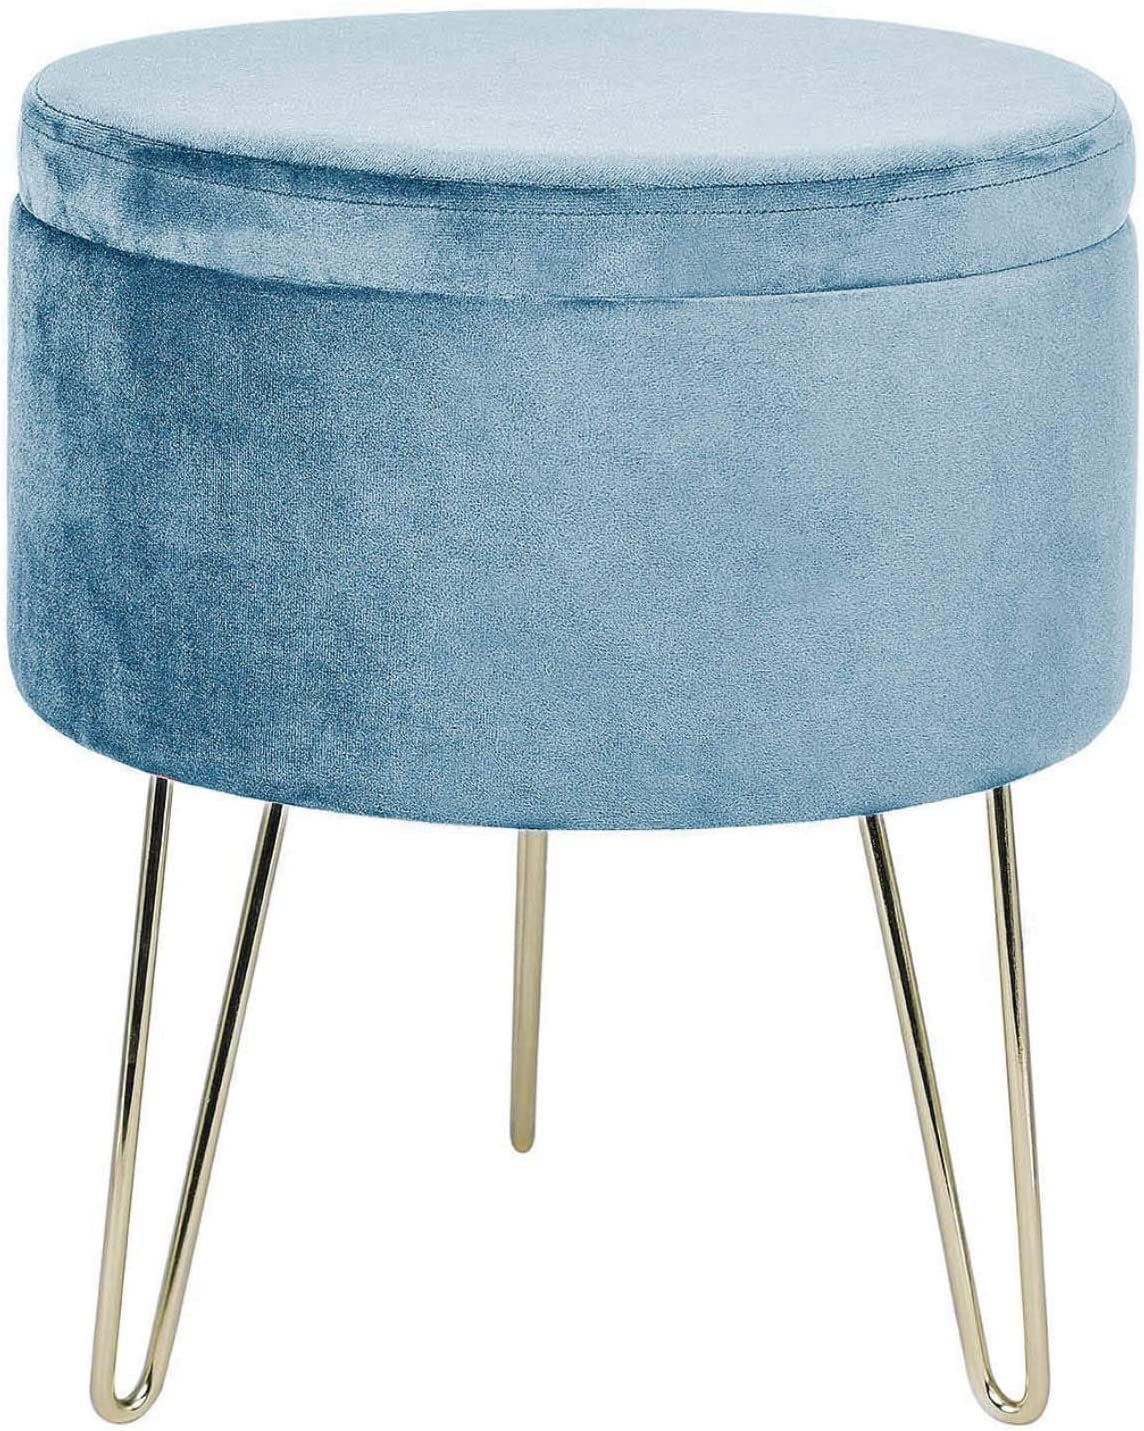 GLOVAL HOME Modern Round Velvet Storage Ottoman Footrest Stool/Seat with Gold Metal Legs & Tray Top Coffee Table,Vanity Stool (Light Blue)